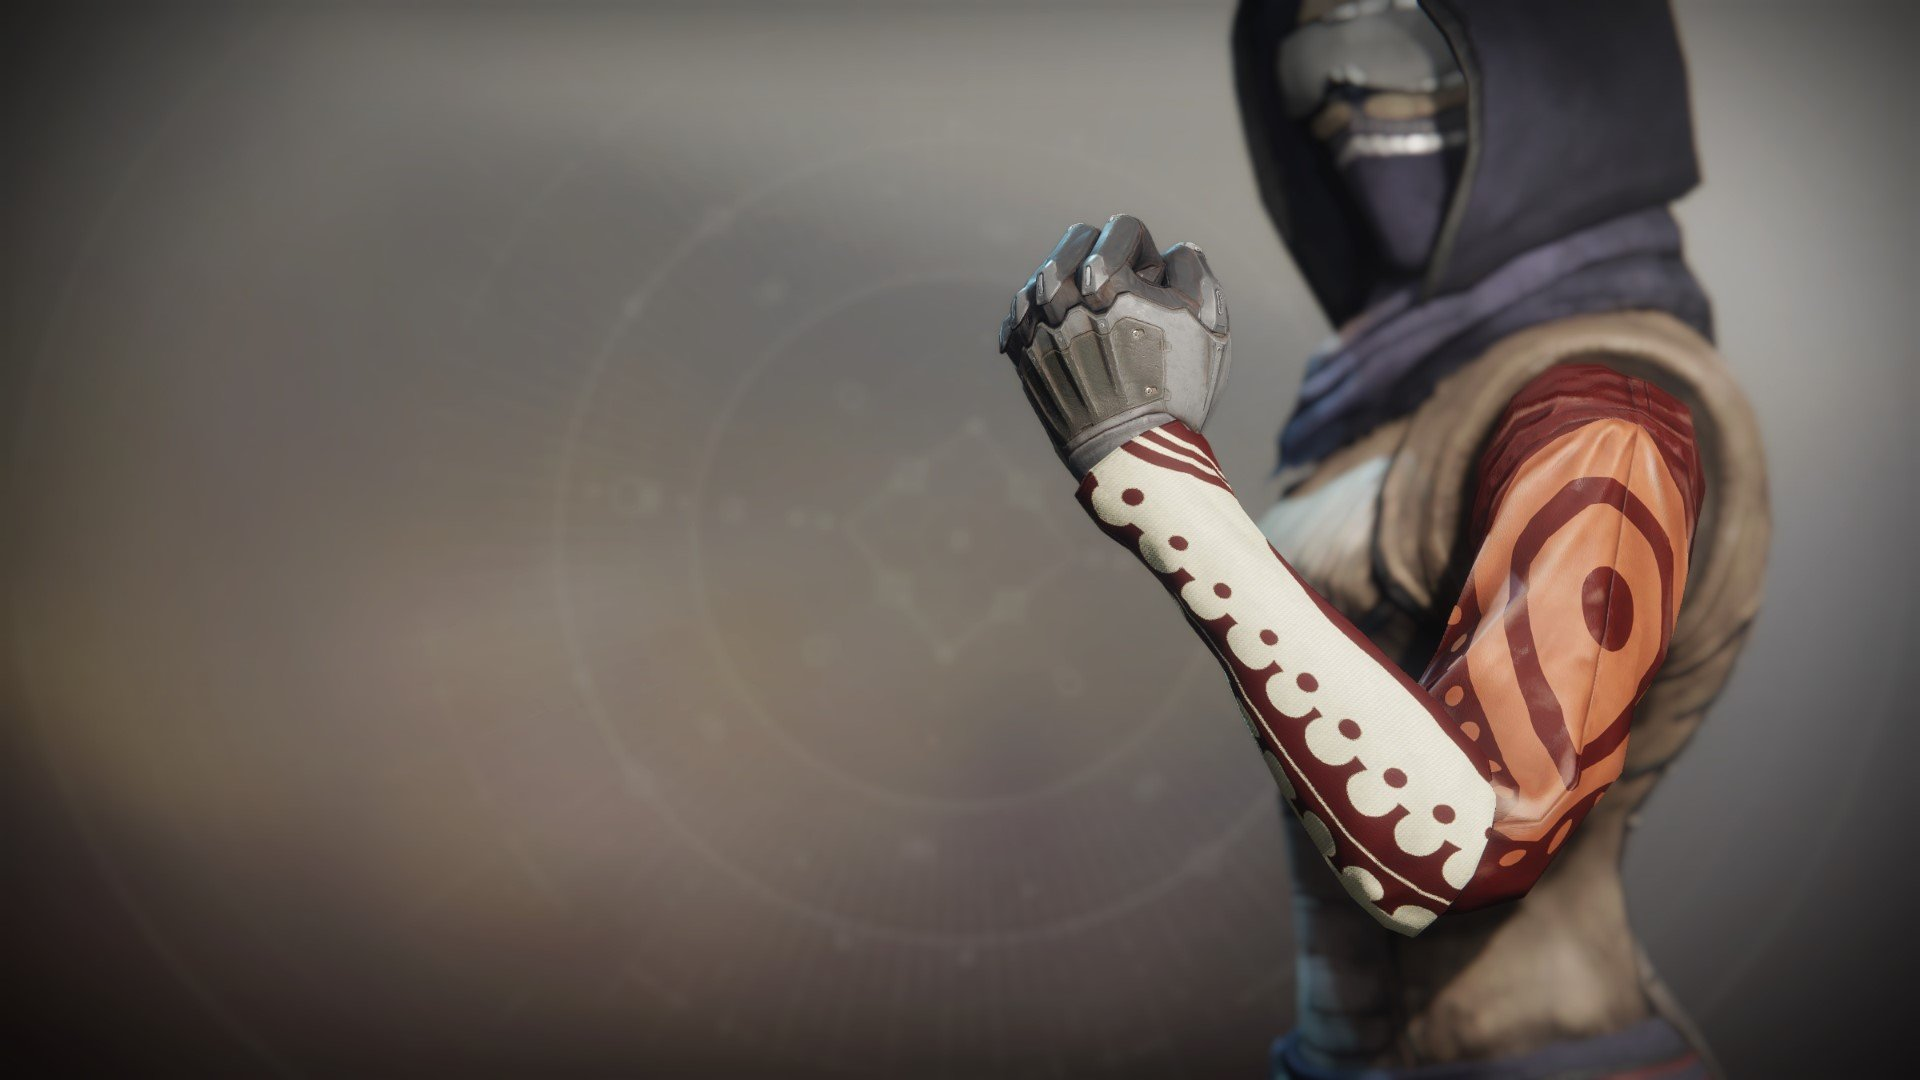 An in-game render of the Ancient Apocalypse Grips.